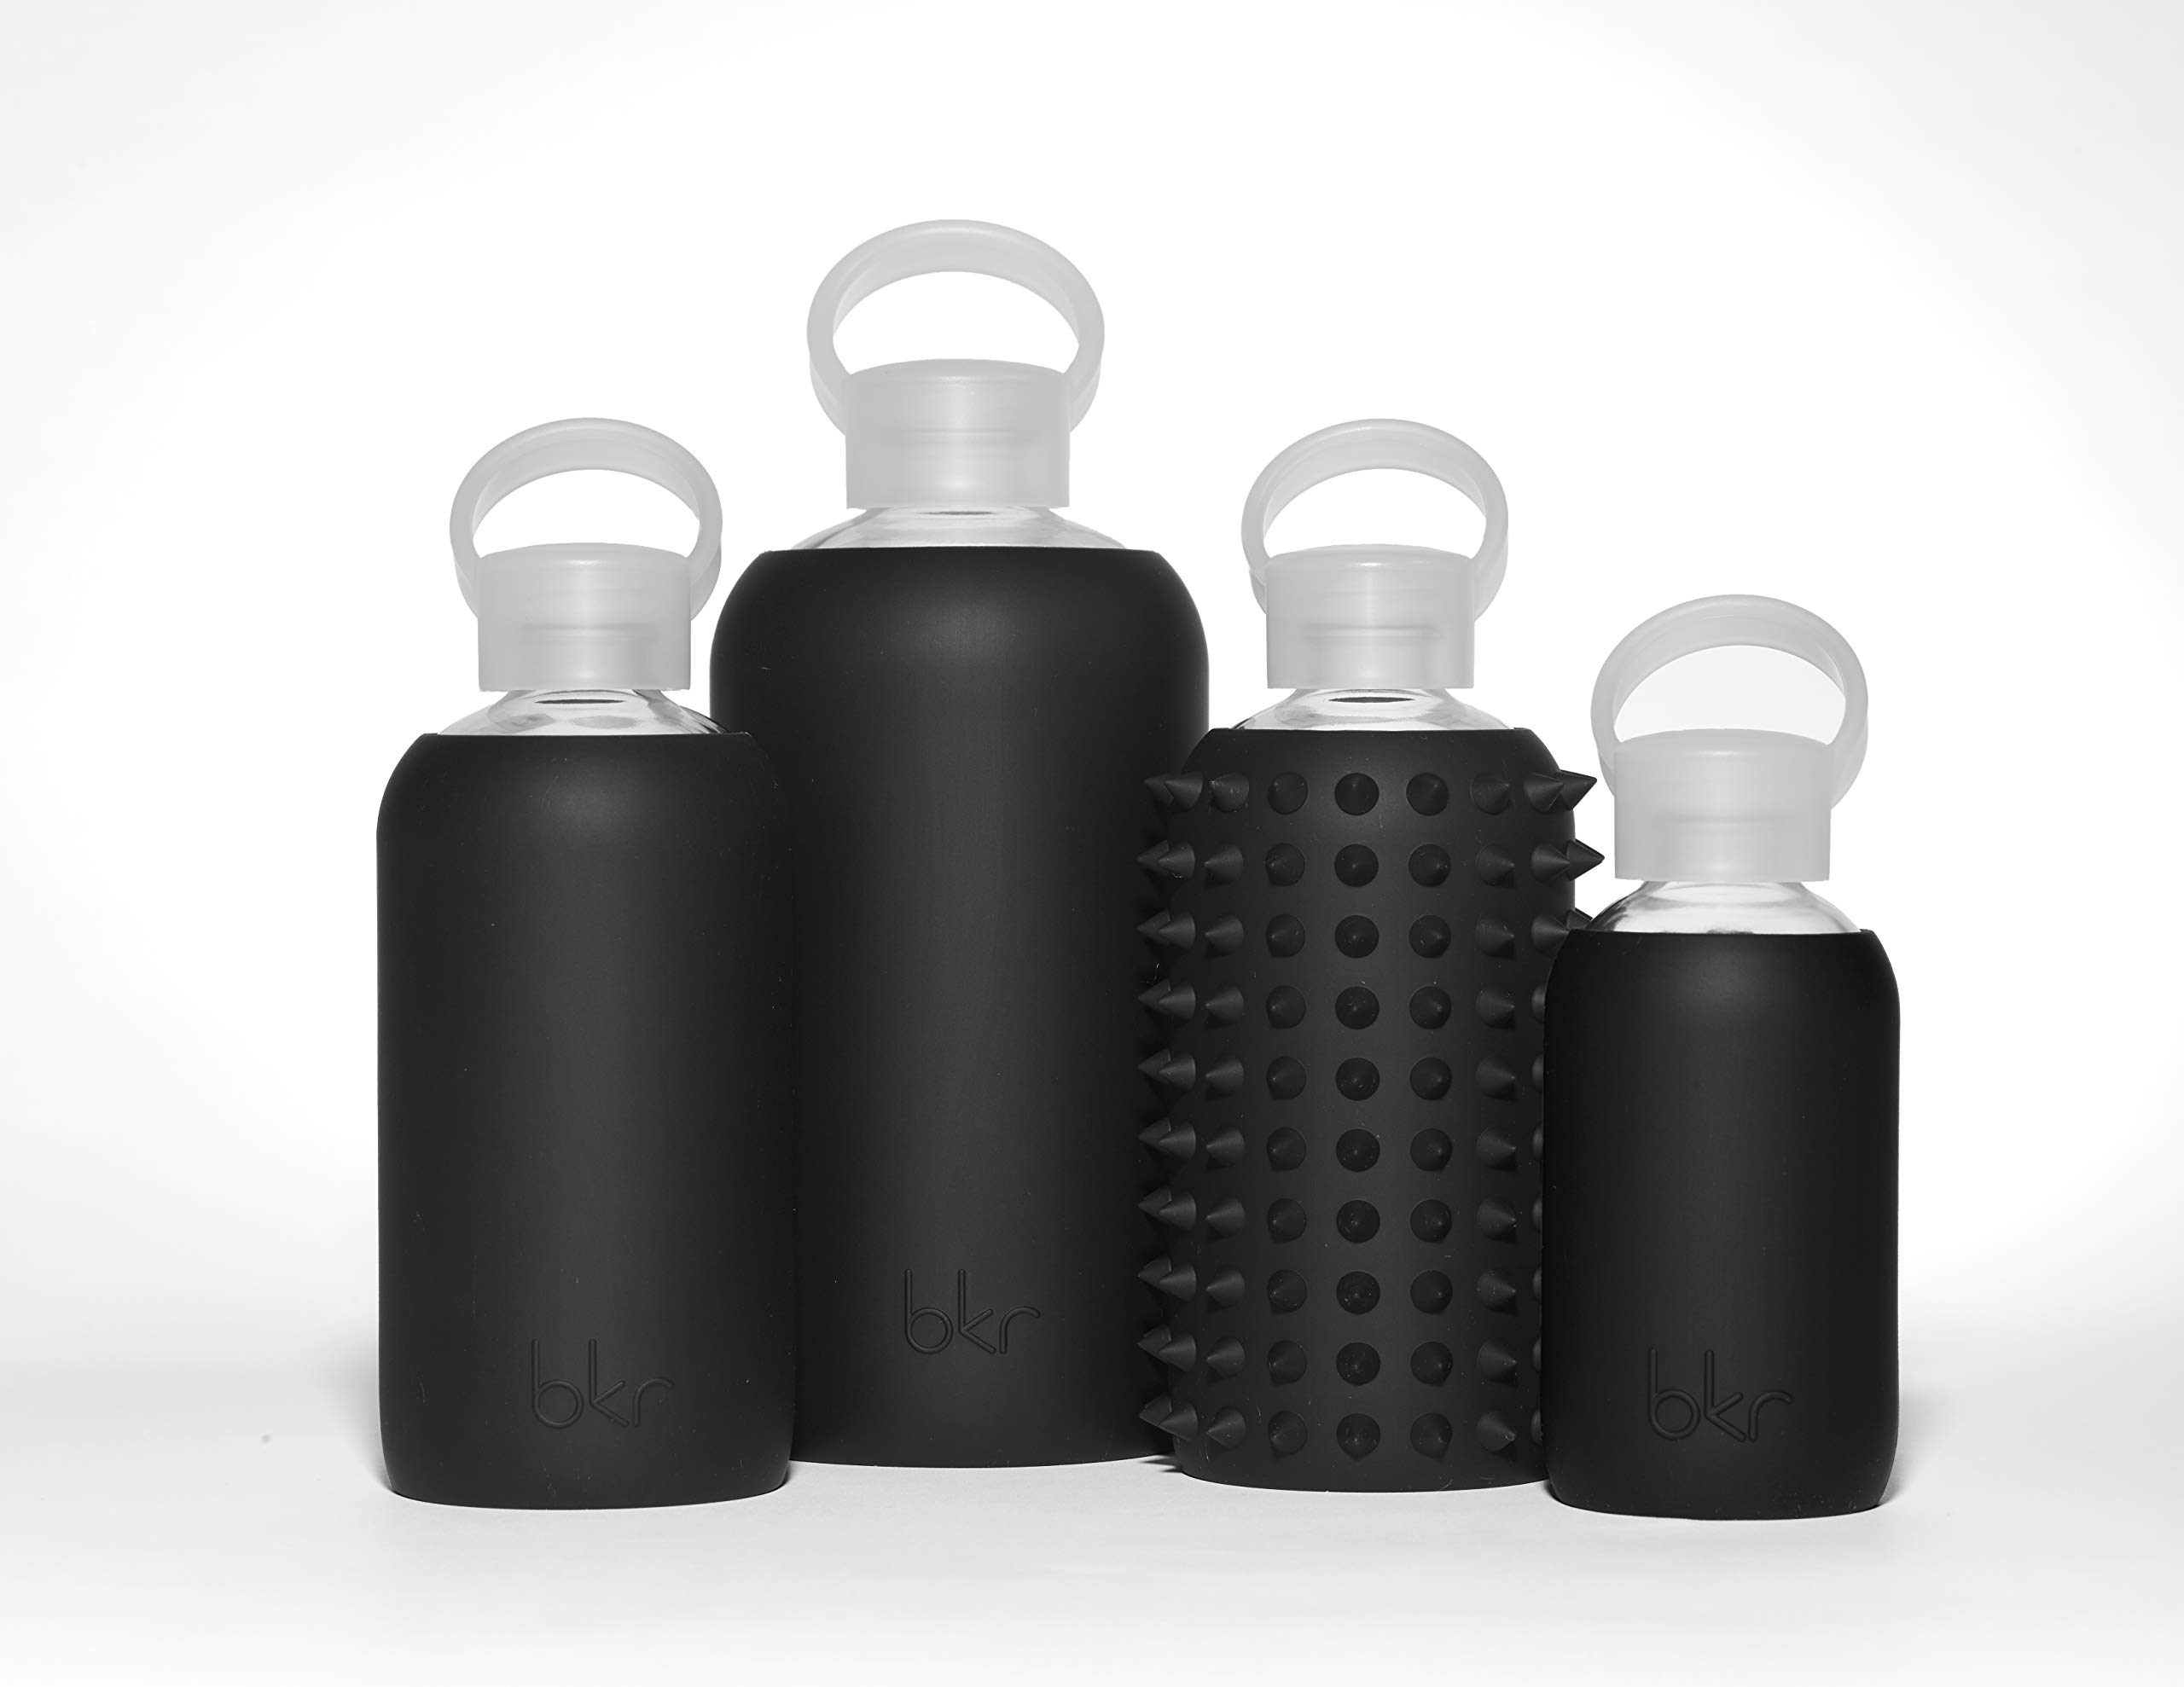 bkr Jet Glass Water Bottle with Smooth Silicone Sleeve for Travel, Narrow Mouth, BPA-Free & Dishwasher Safe, Opaque Black, 16 oz / 500 mL by bkr (Image #7)